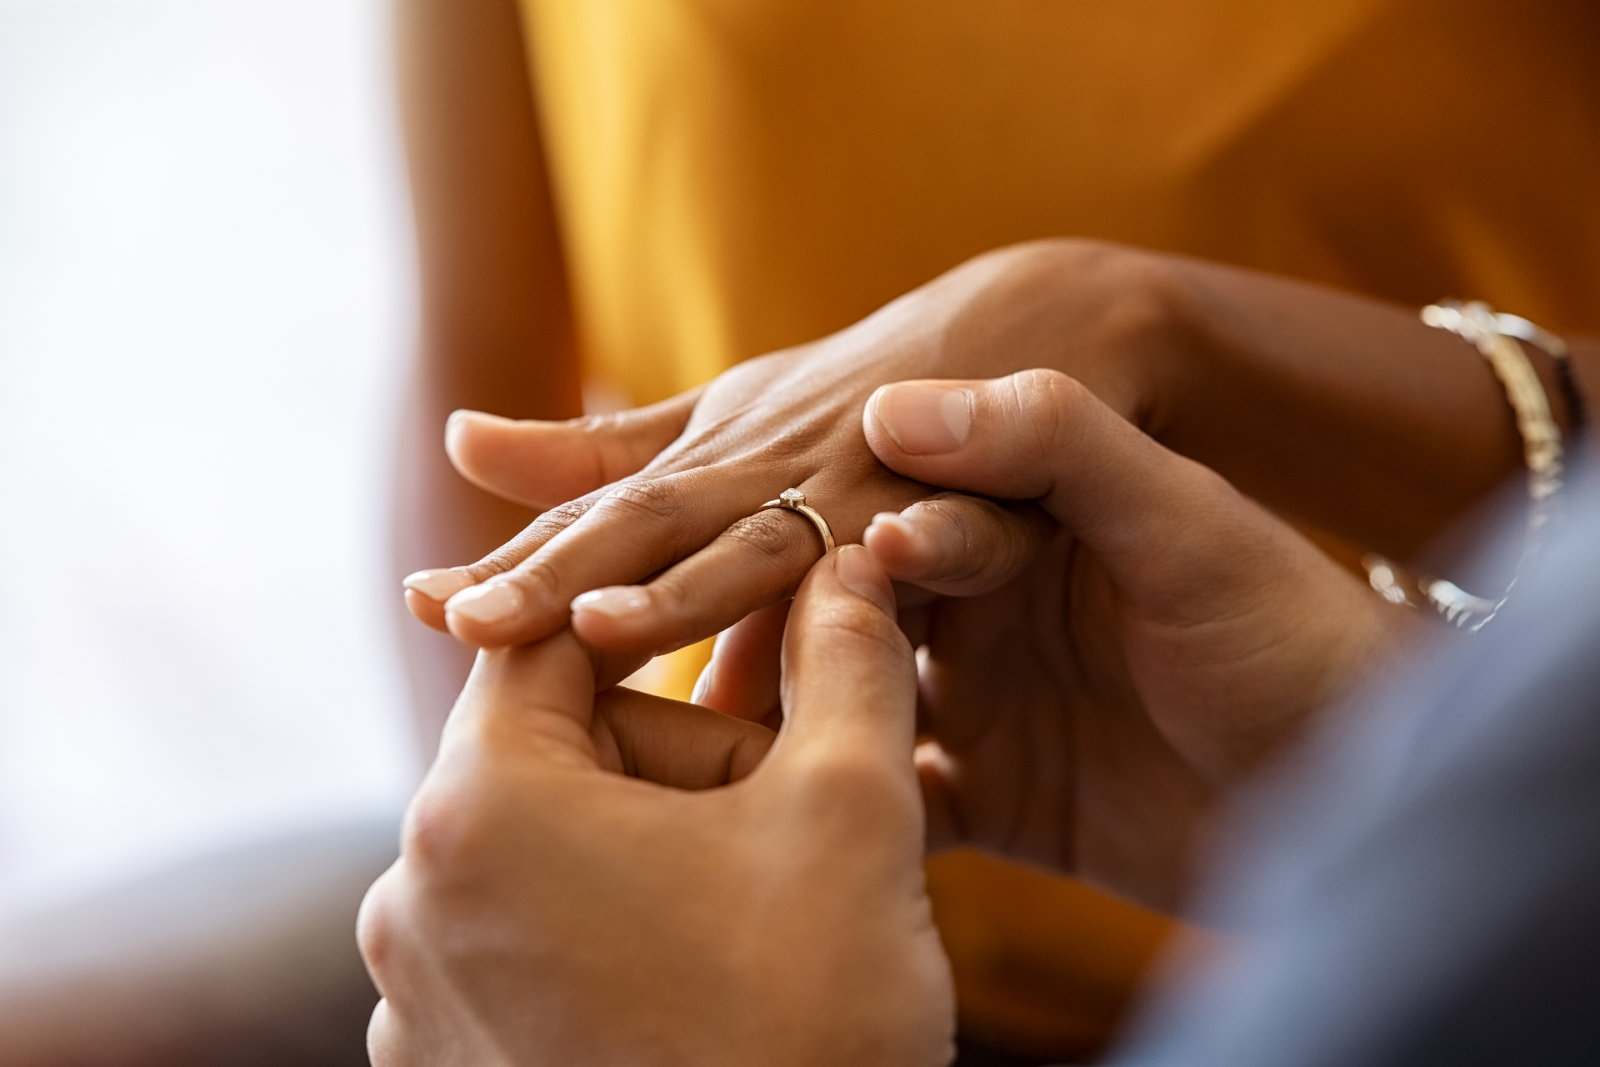 man putting an engagement ring on fiancee's finger